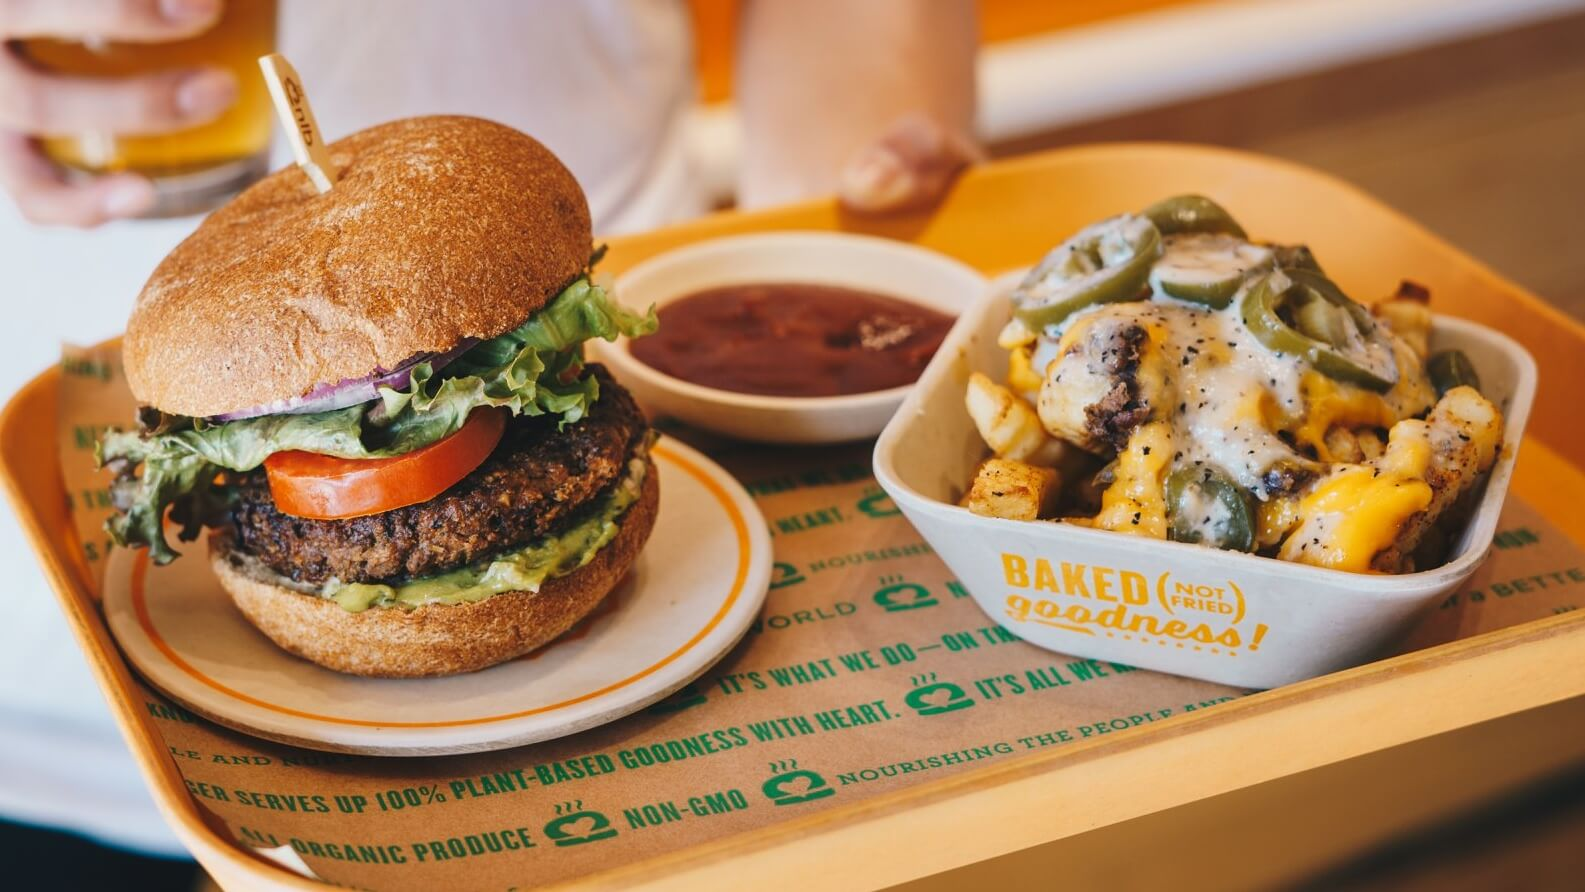 Vegan Fast Food Chain Next Level Burger Expands to Whole Foods Market in San Francisco